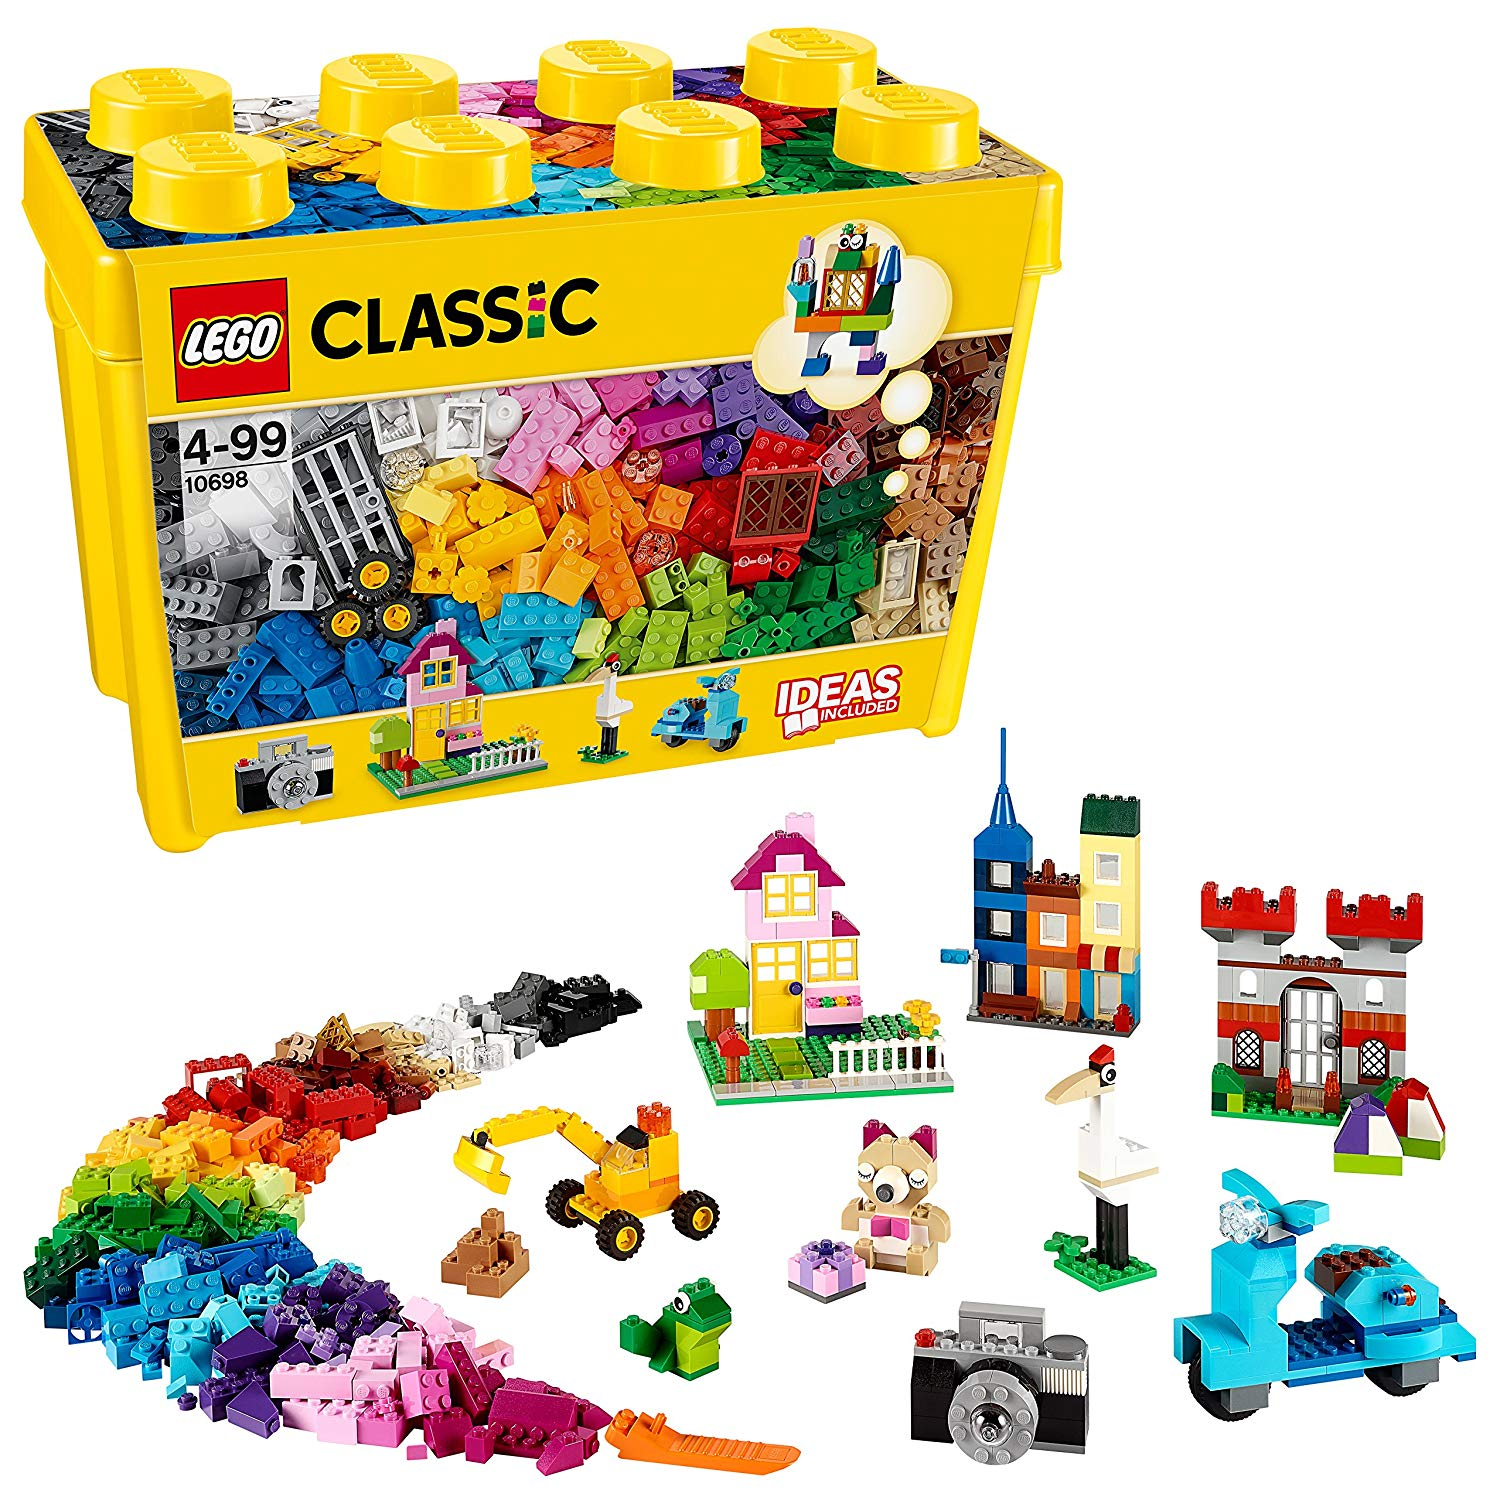 SAVE £8 at Amazon: LEGO 10698 Classic LARGE Creative Brick Box (790 Pieces)